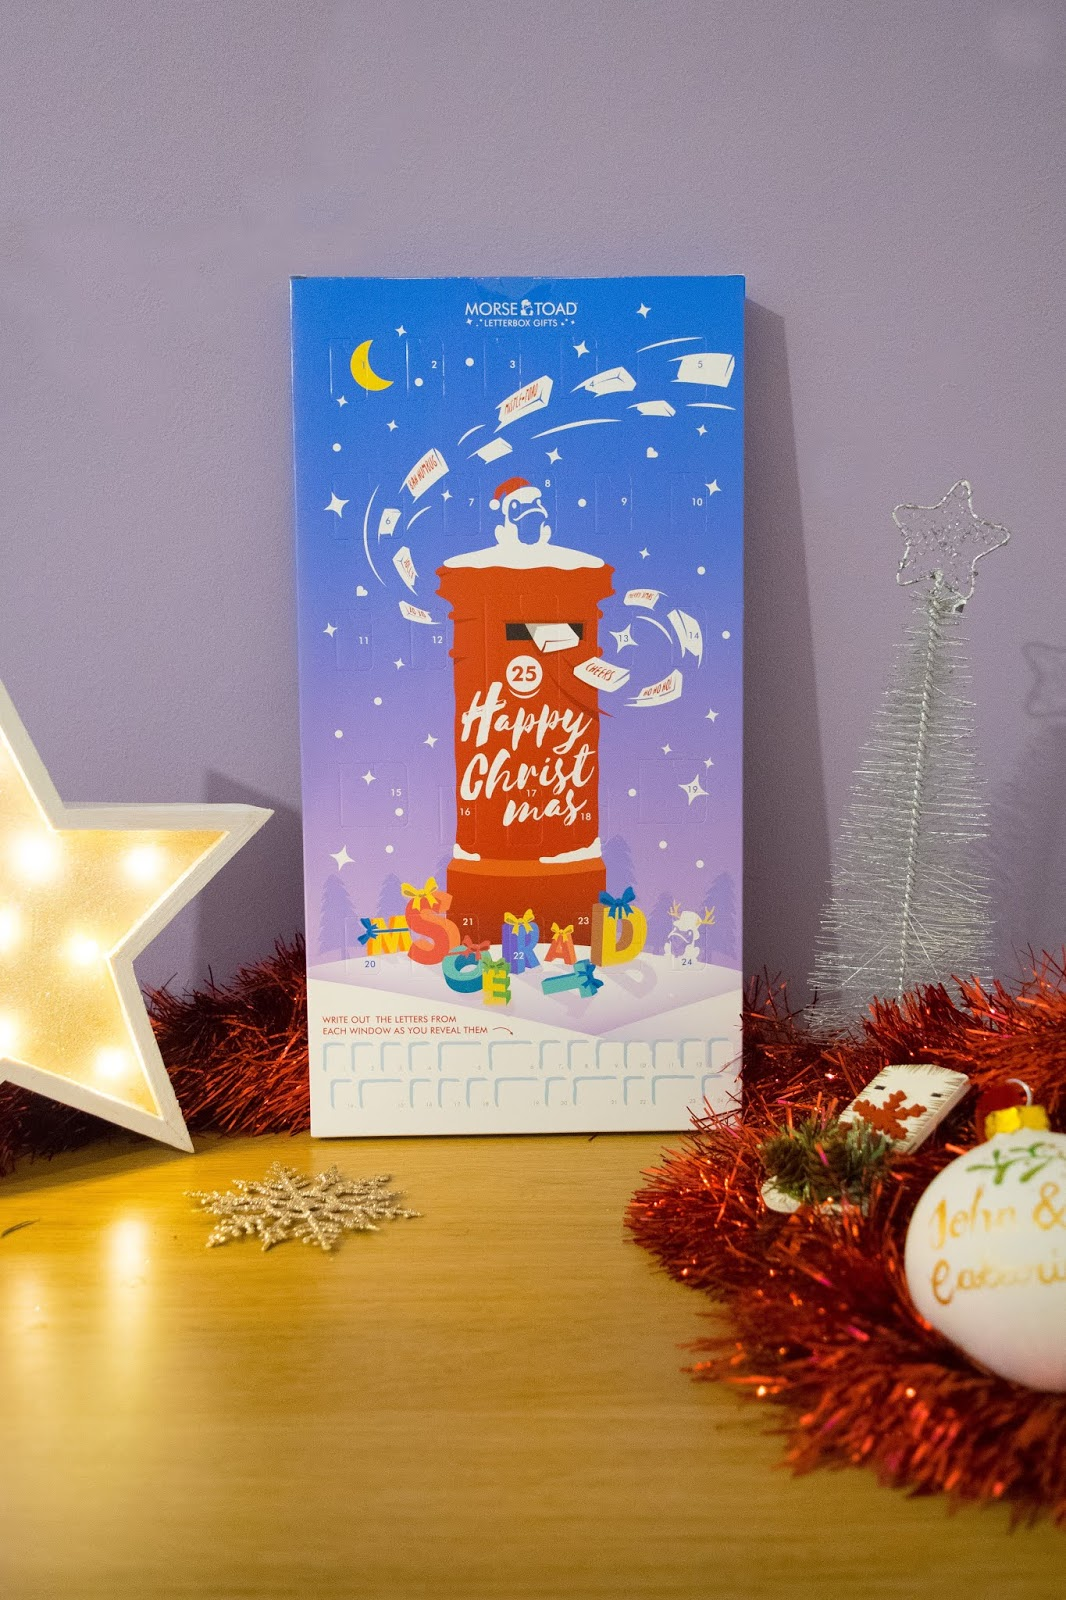 An advent calendar with a blue background and a red postbox covered in snow on the front. There is a frog with a Christmas hat on top of the postbox.